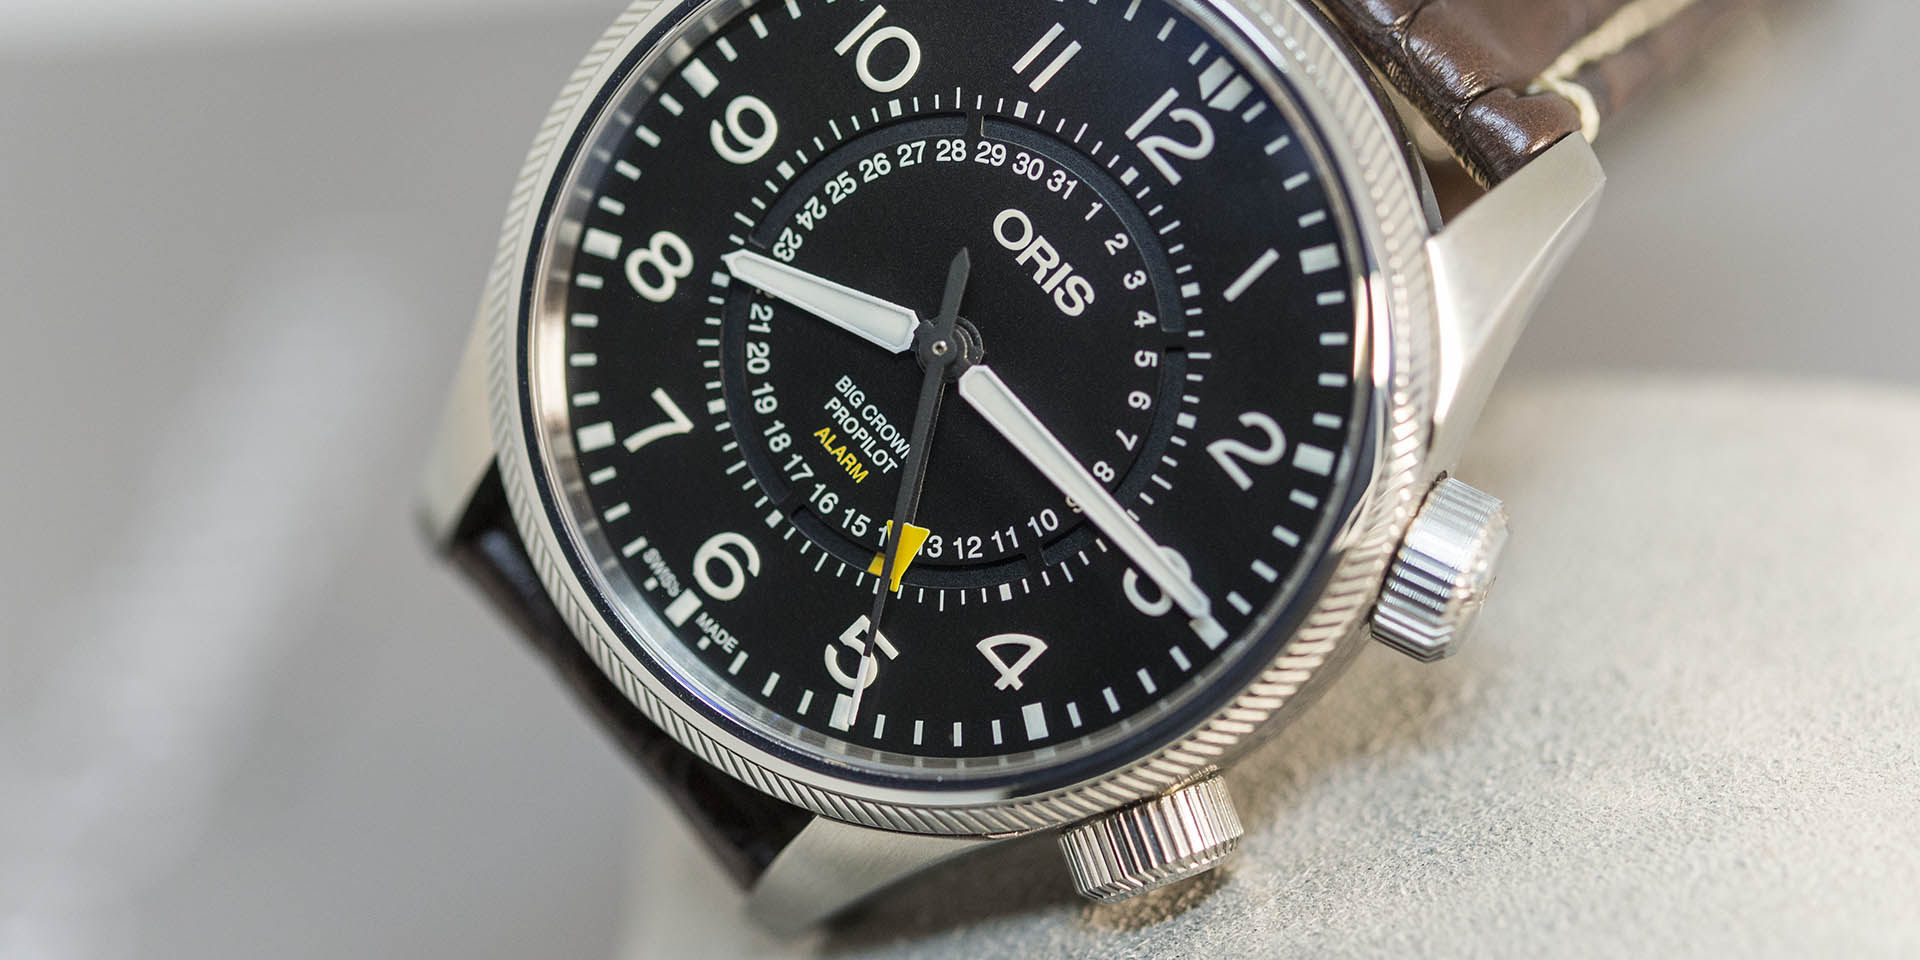 oris-big-crown-propilot-alarm-limited-edition-01-910-7745-4084-5.jpg